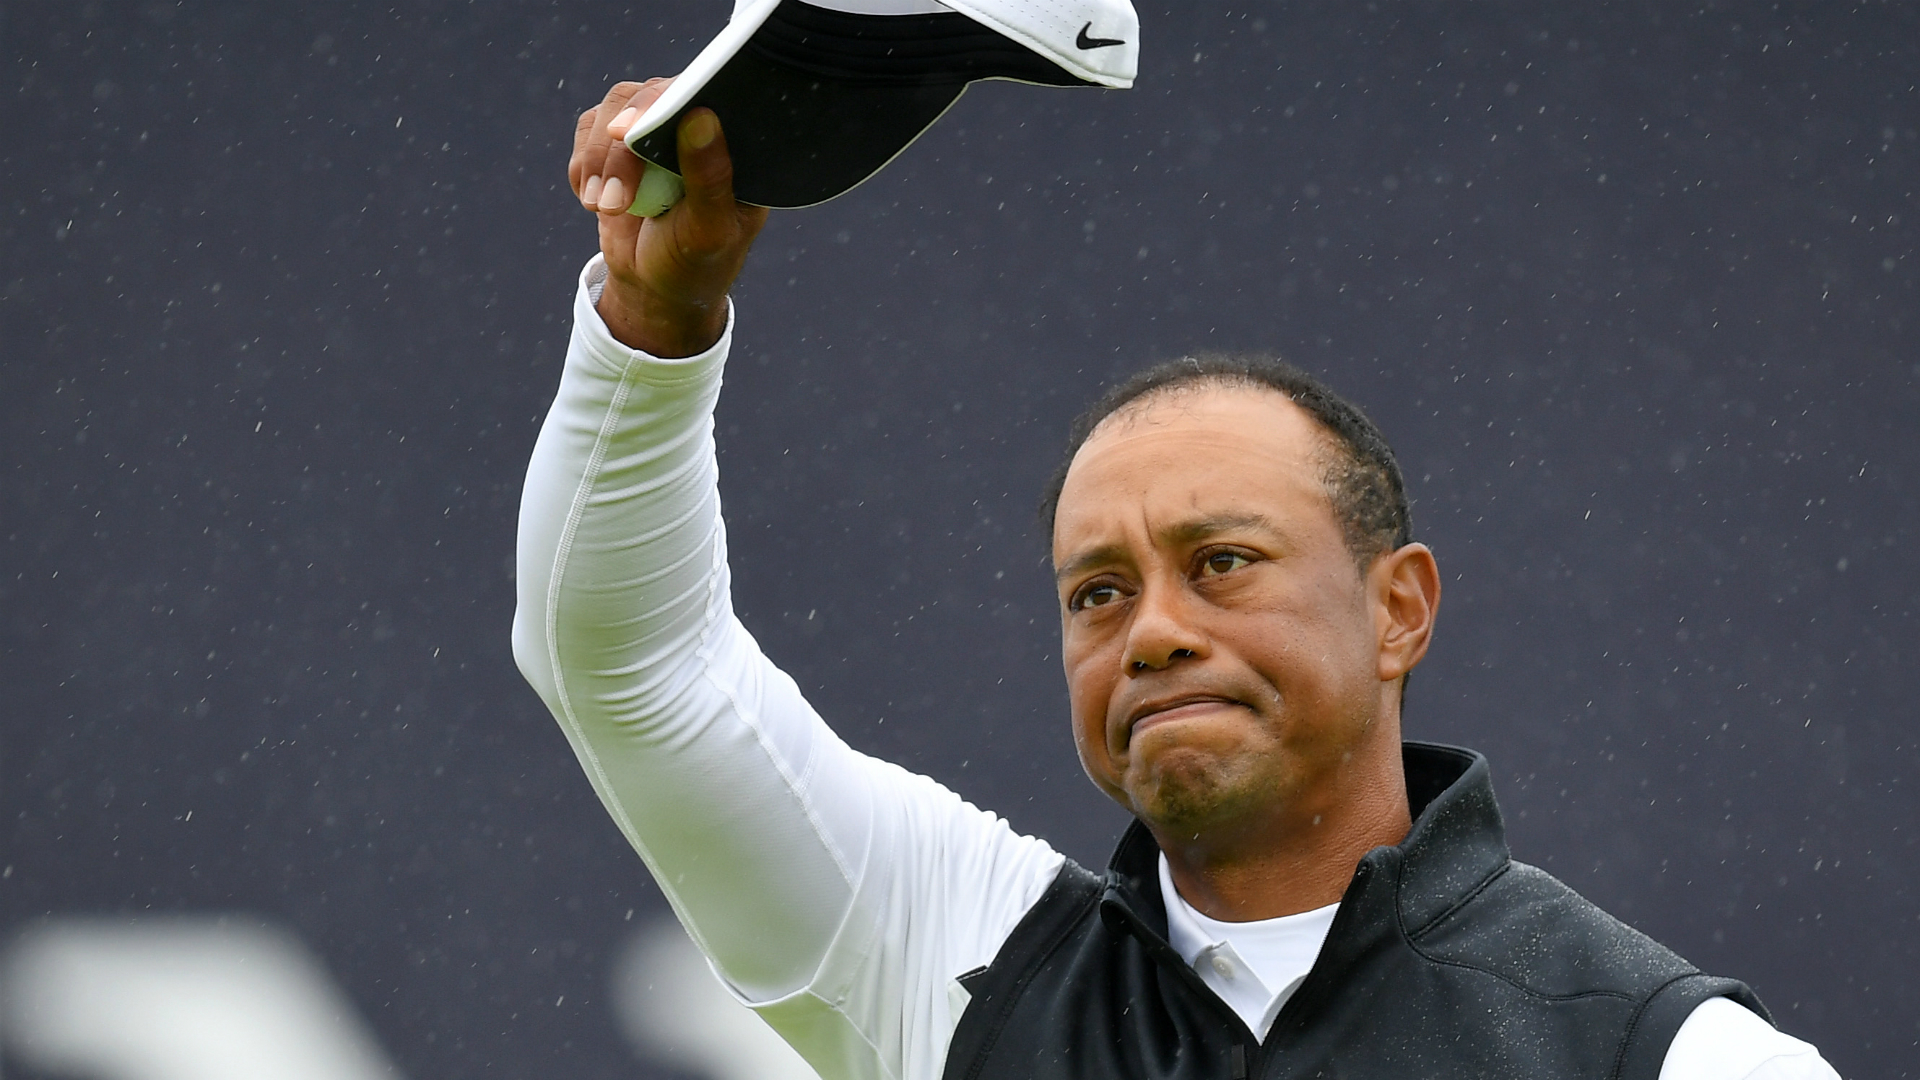 tiger woods at the british open 2019 results